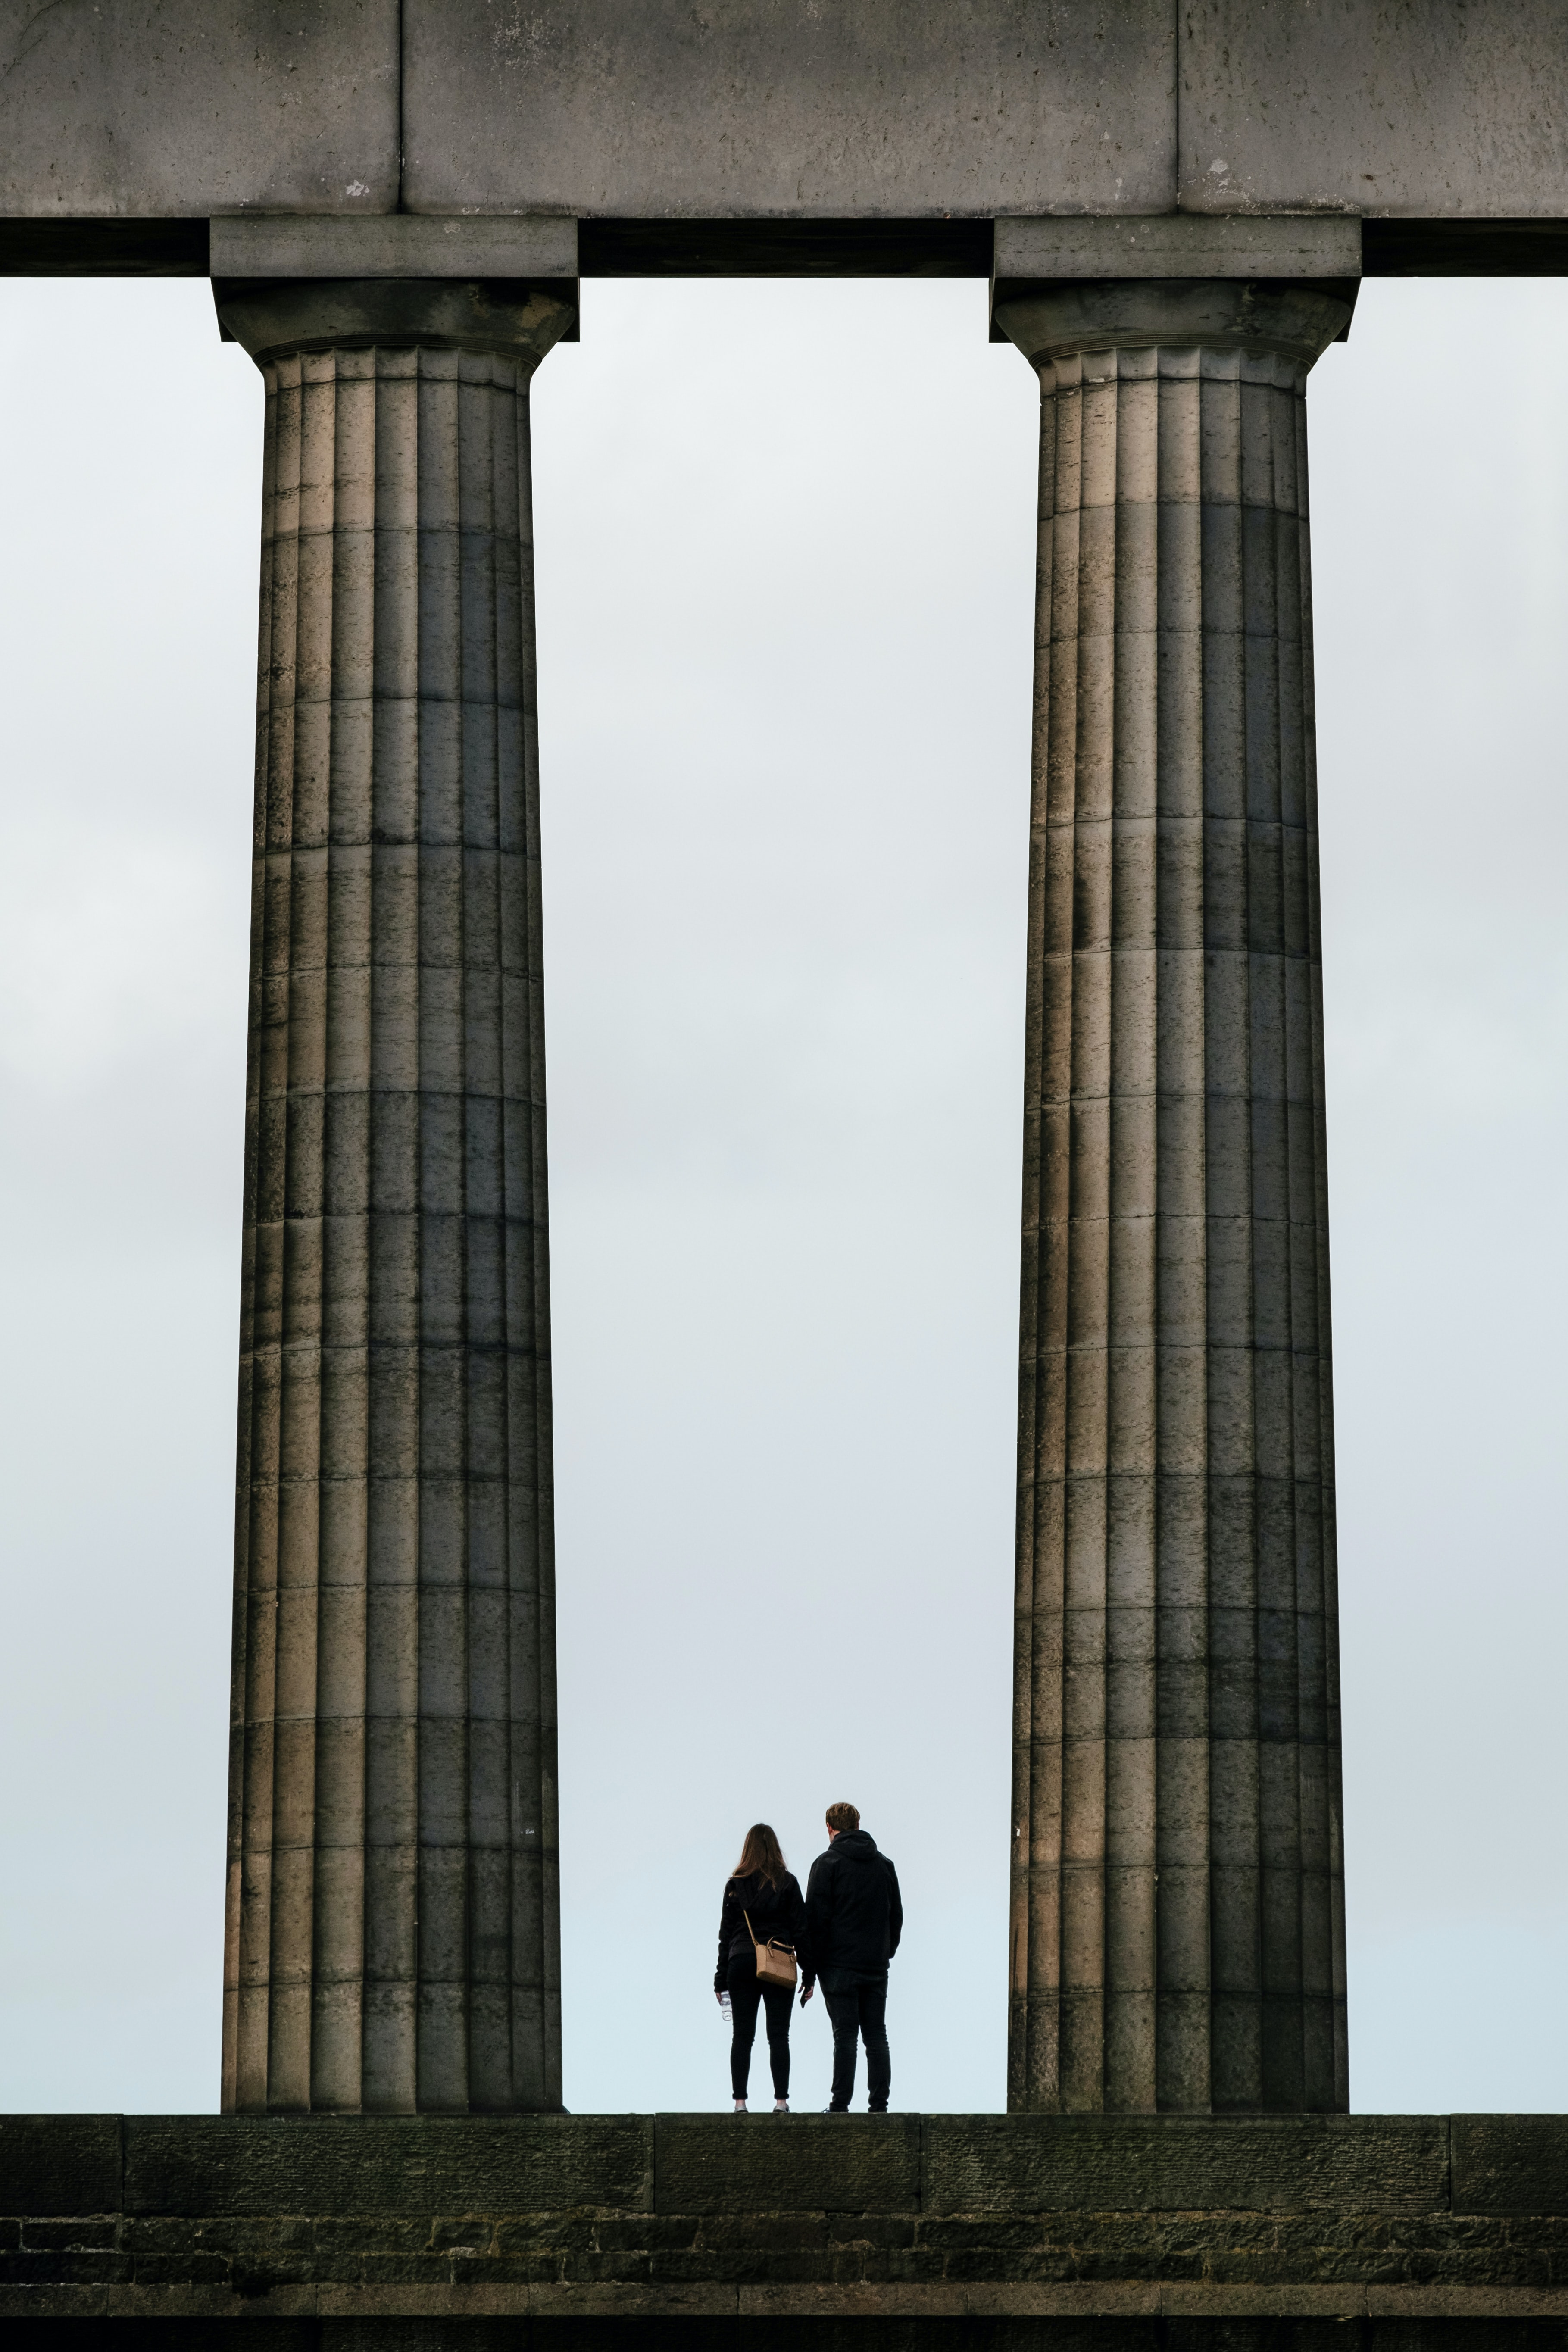 man and woman standing near monument